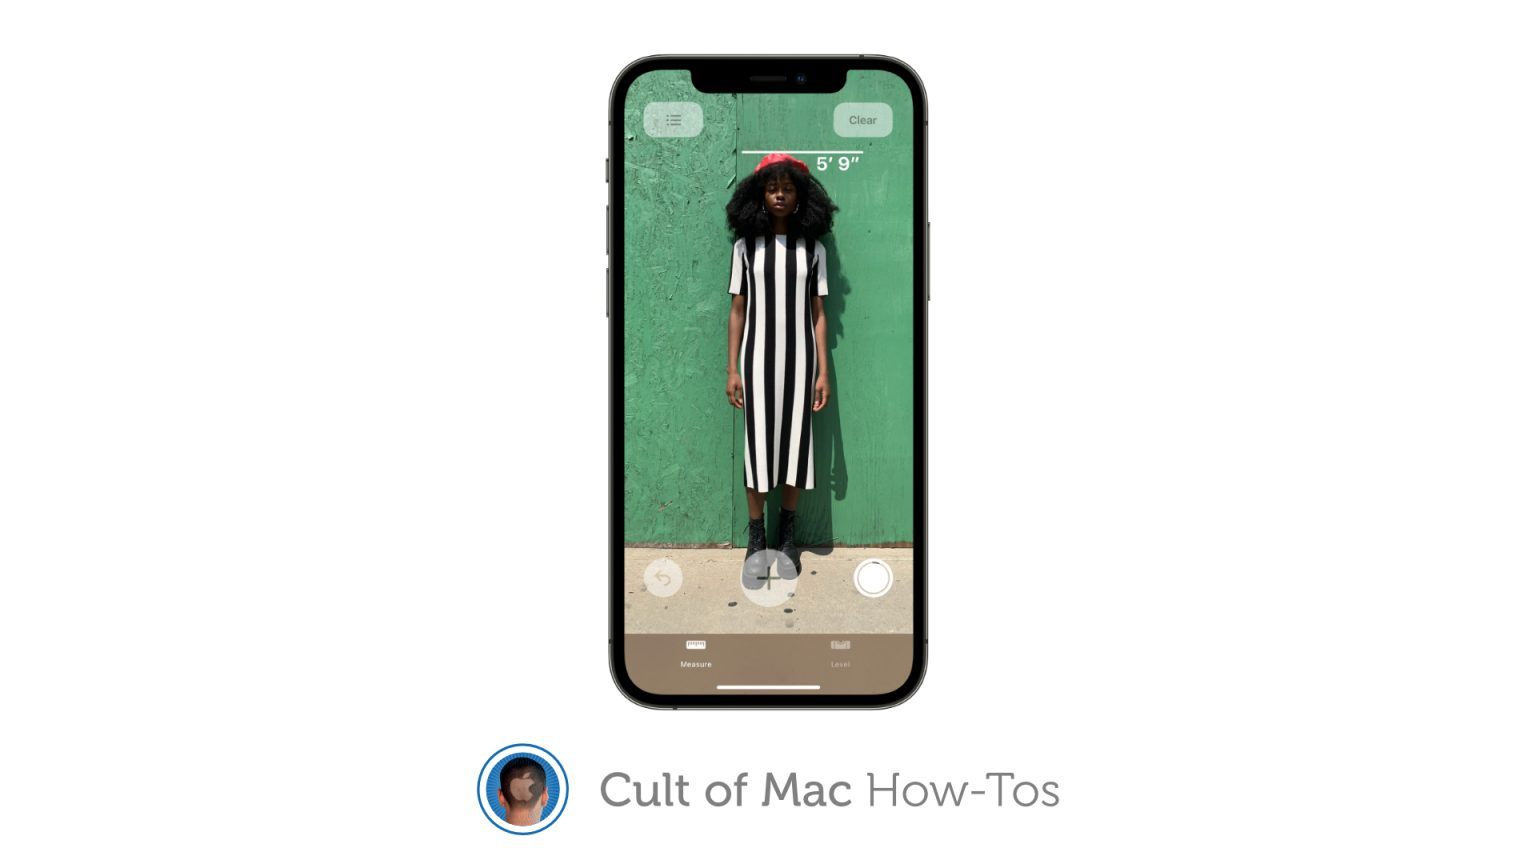 How to measure height with iPhone 12 Pro